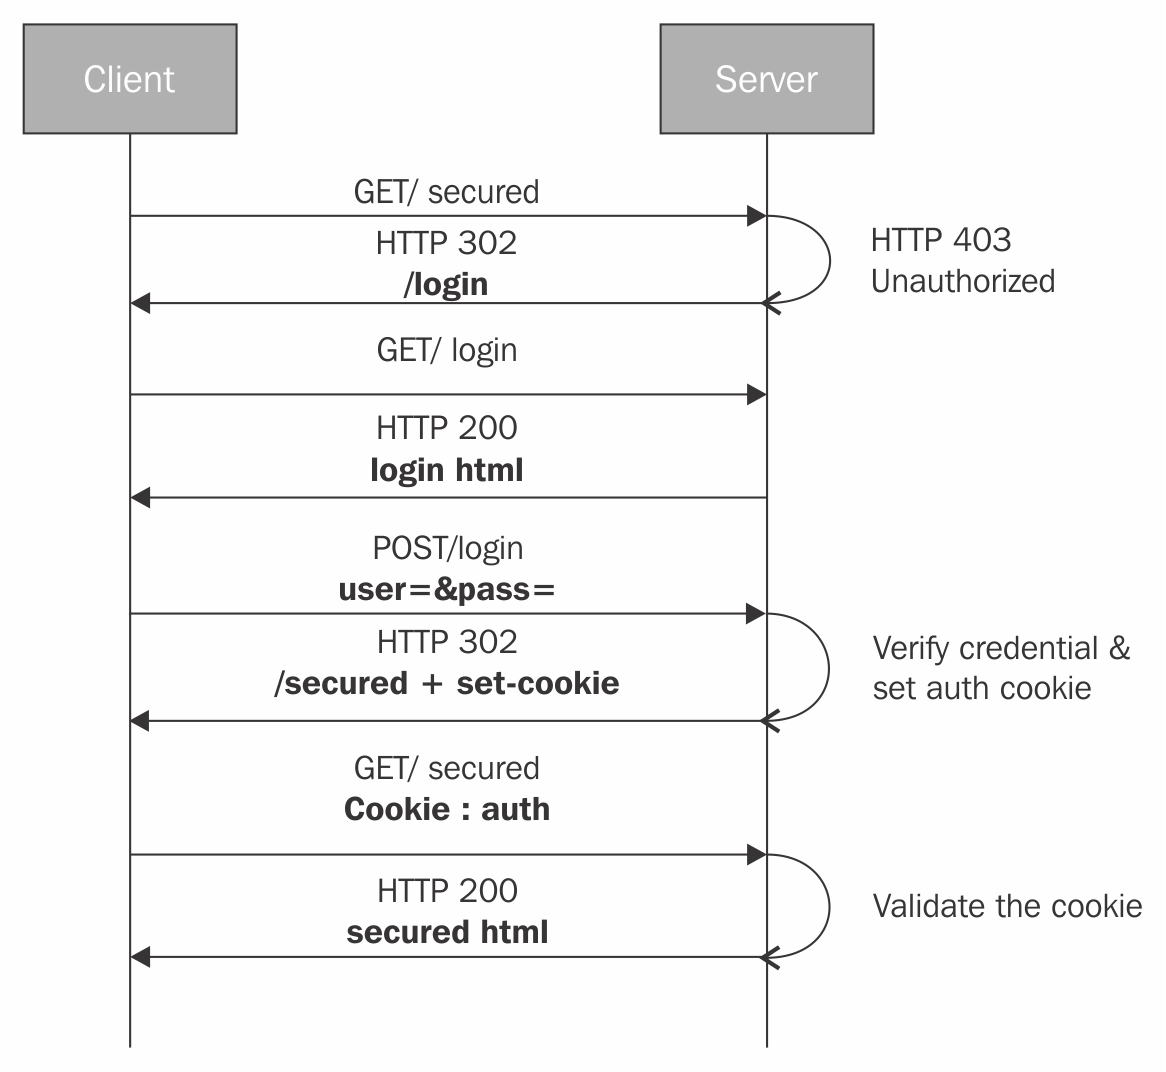 hight resolution of cookie based authentication involves setting the browser cookie to track the user authentication session the following sequence diagram explains a typical